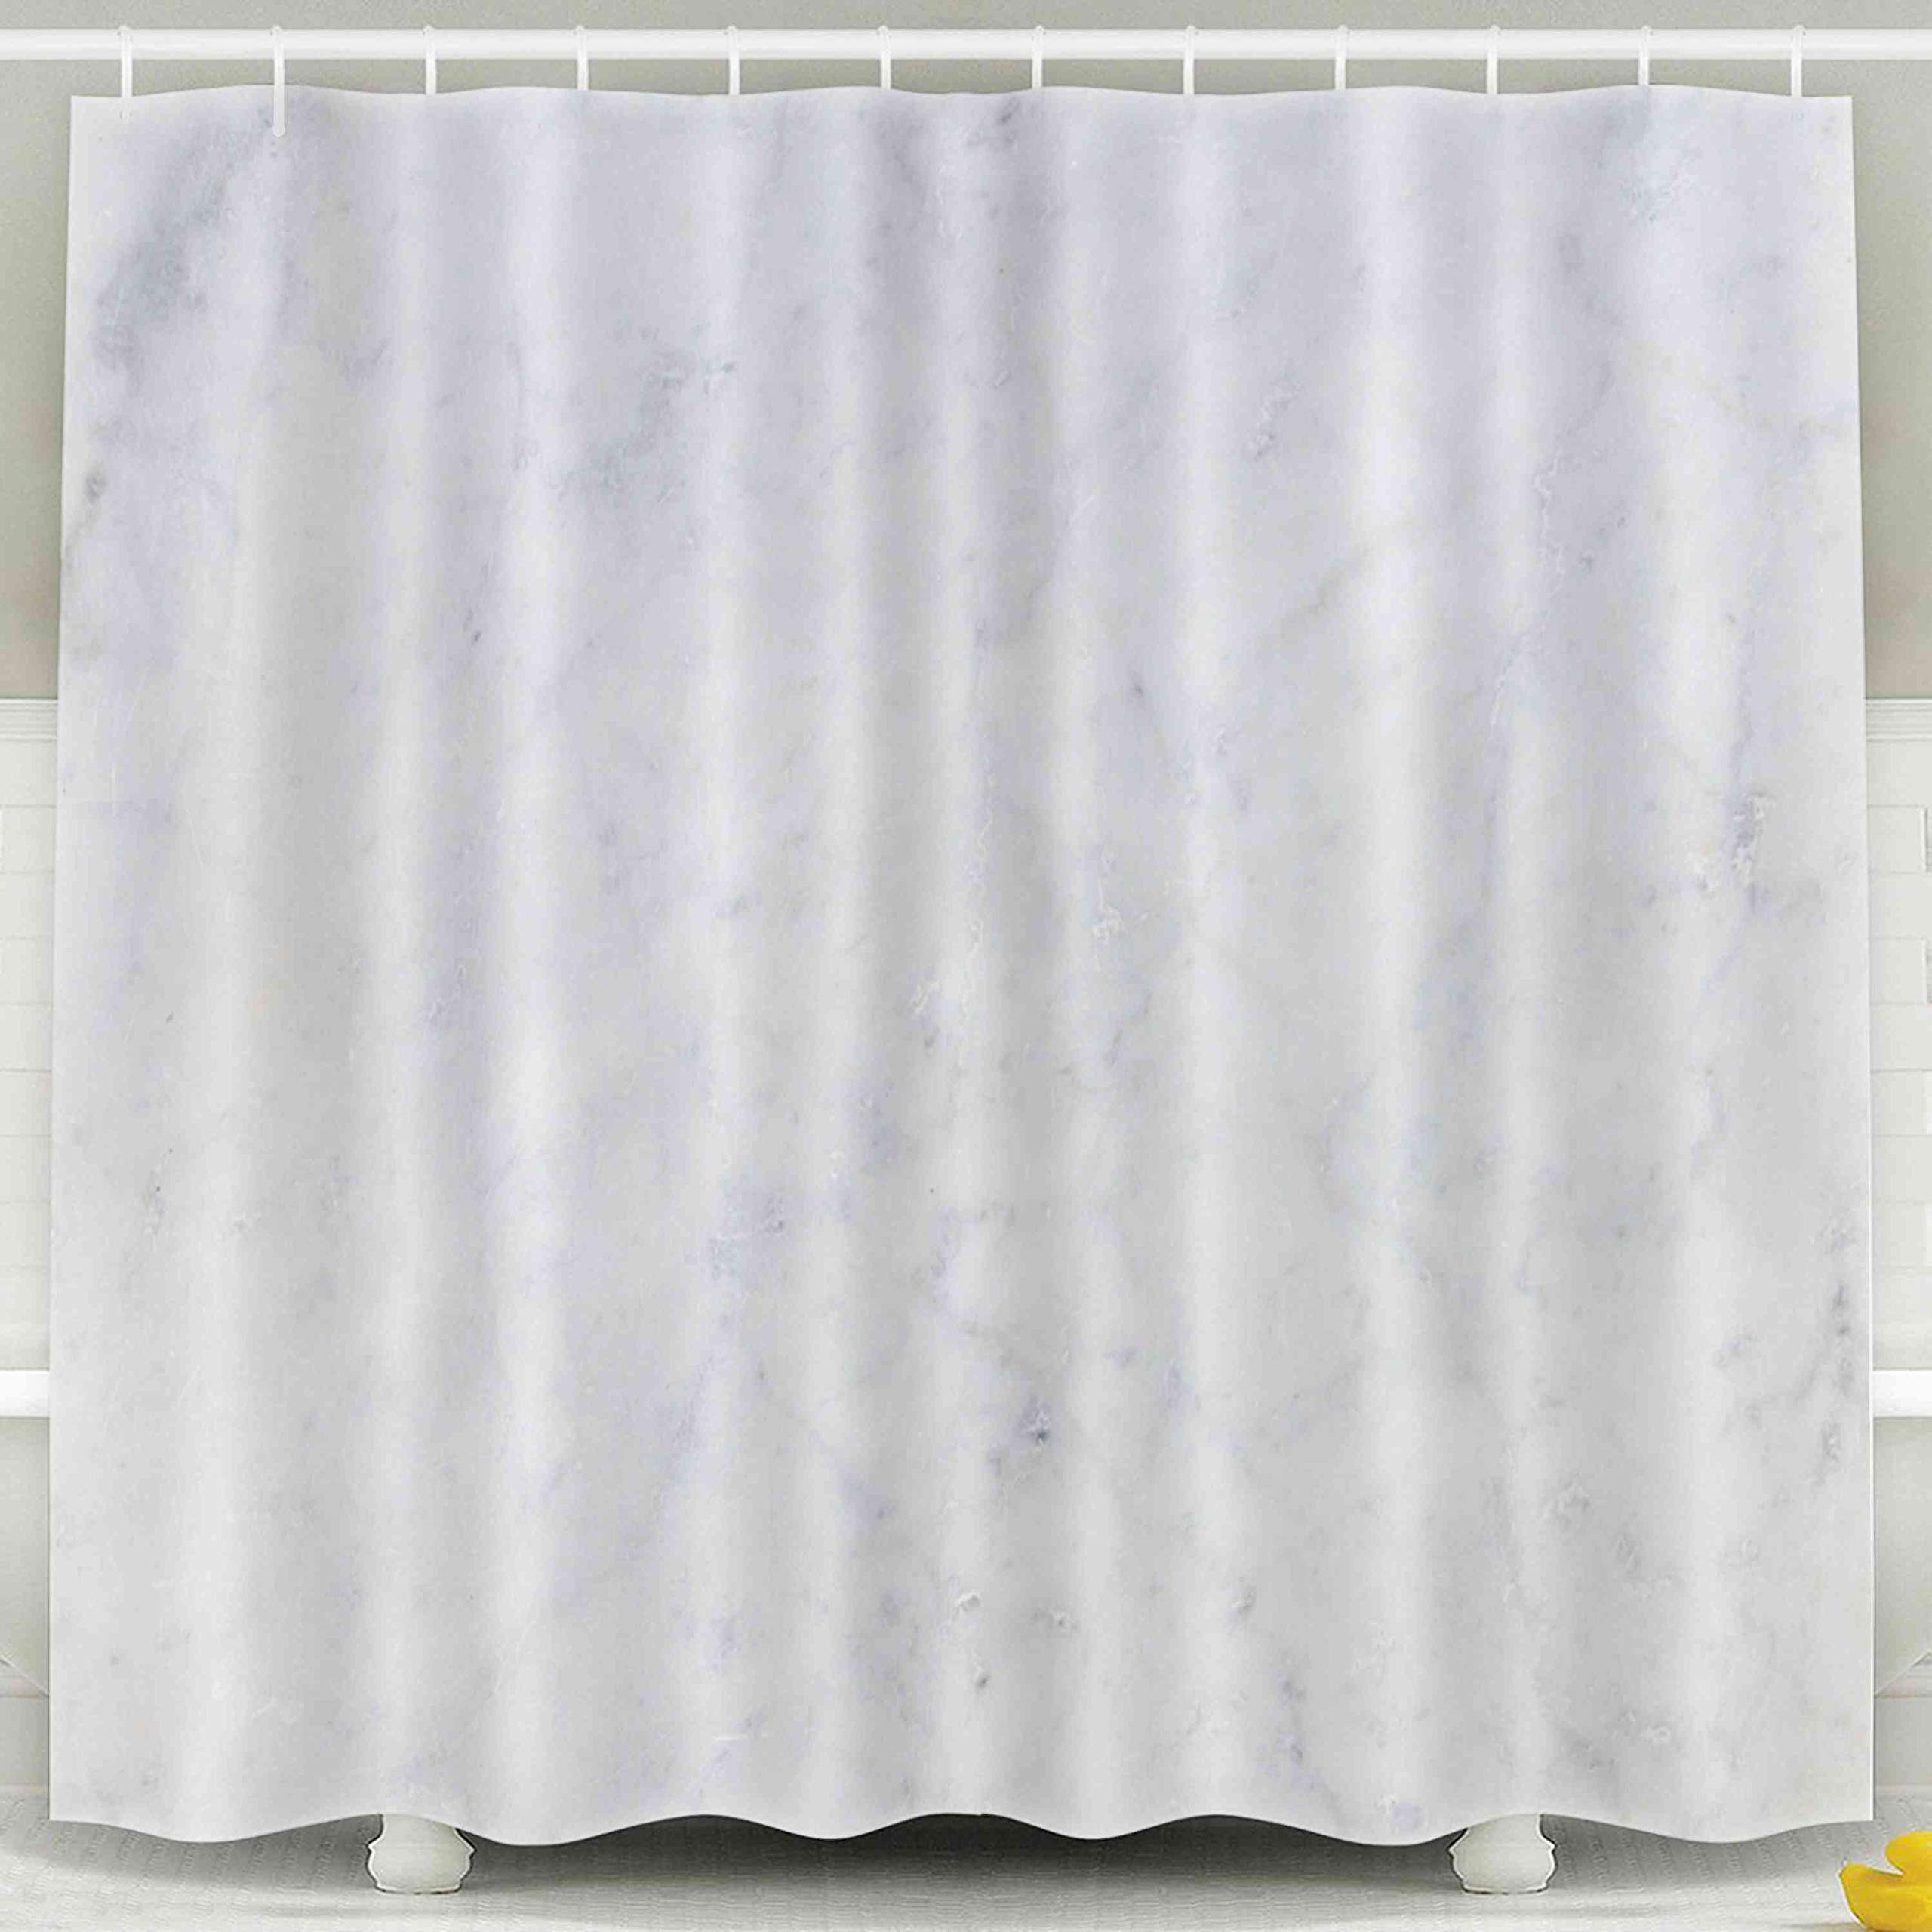 Jacrane Waterproof Fabric Bathroom Clear Shower Curtains Liner with Hooks White Marble Texture Background High Resolution 72X72Inch,Pink Green